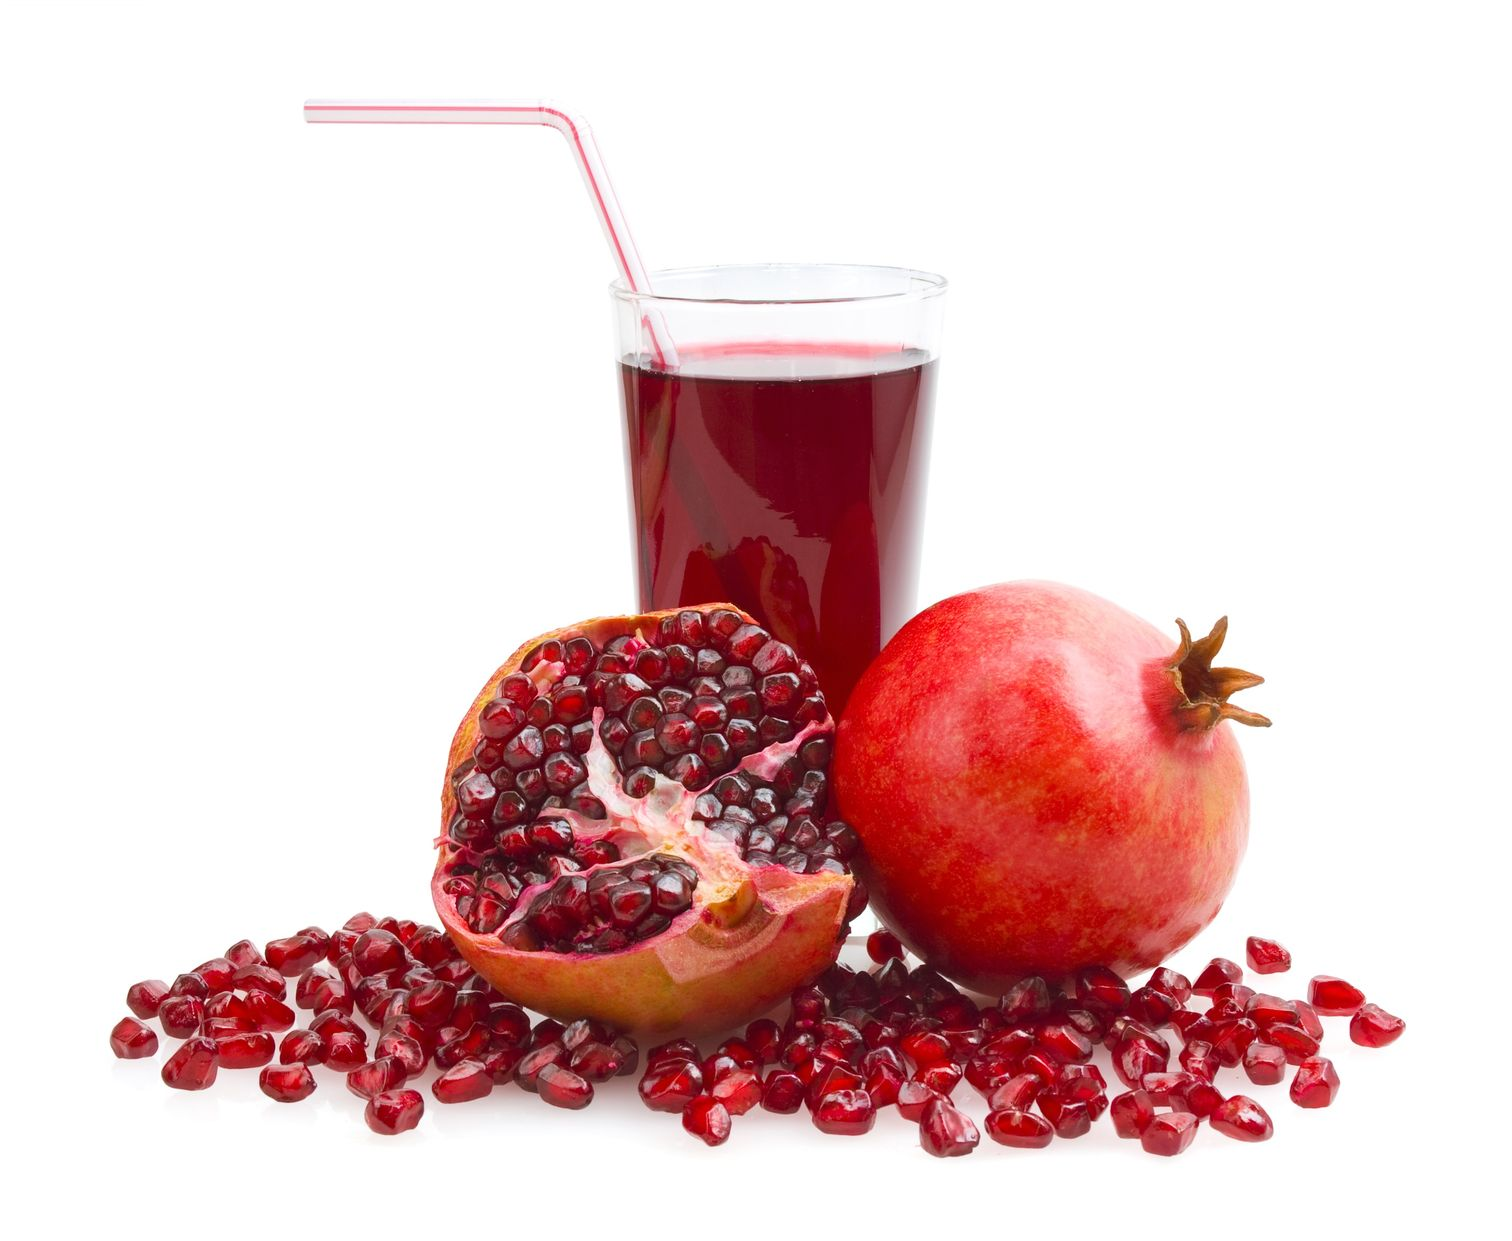 pomegranate juice increase antioxidants after exercise